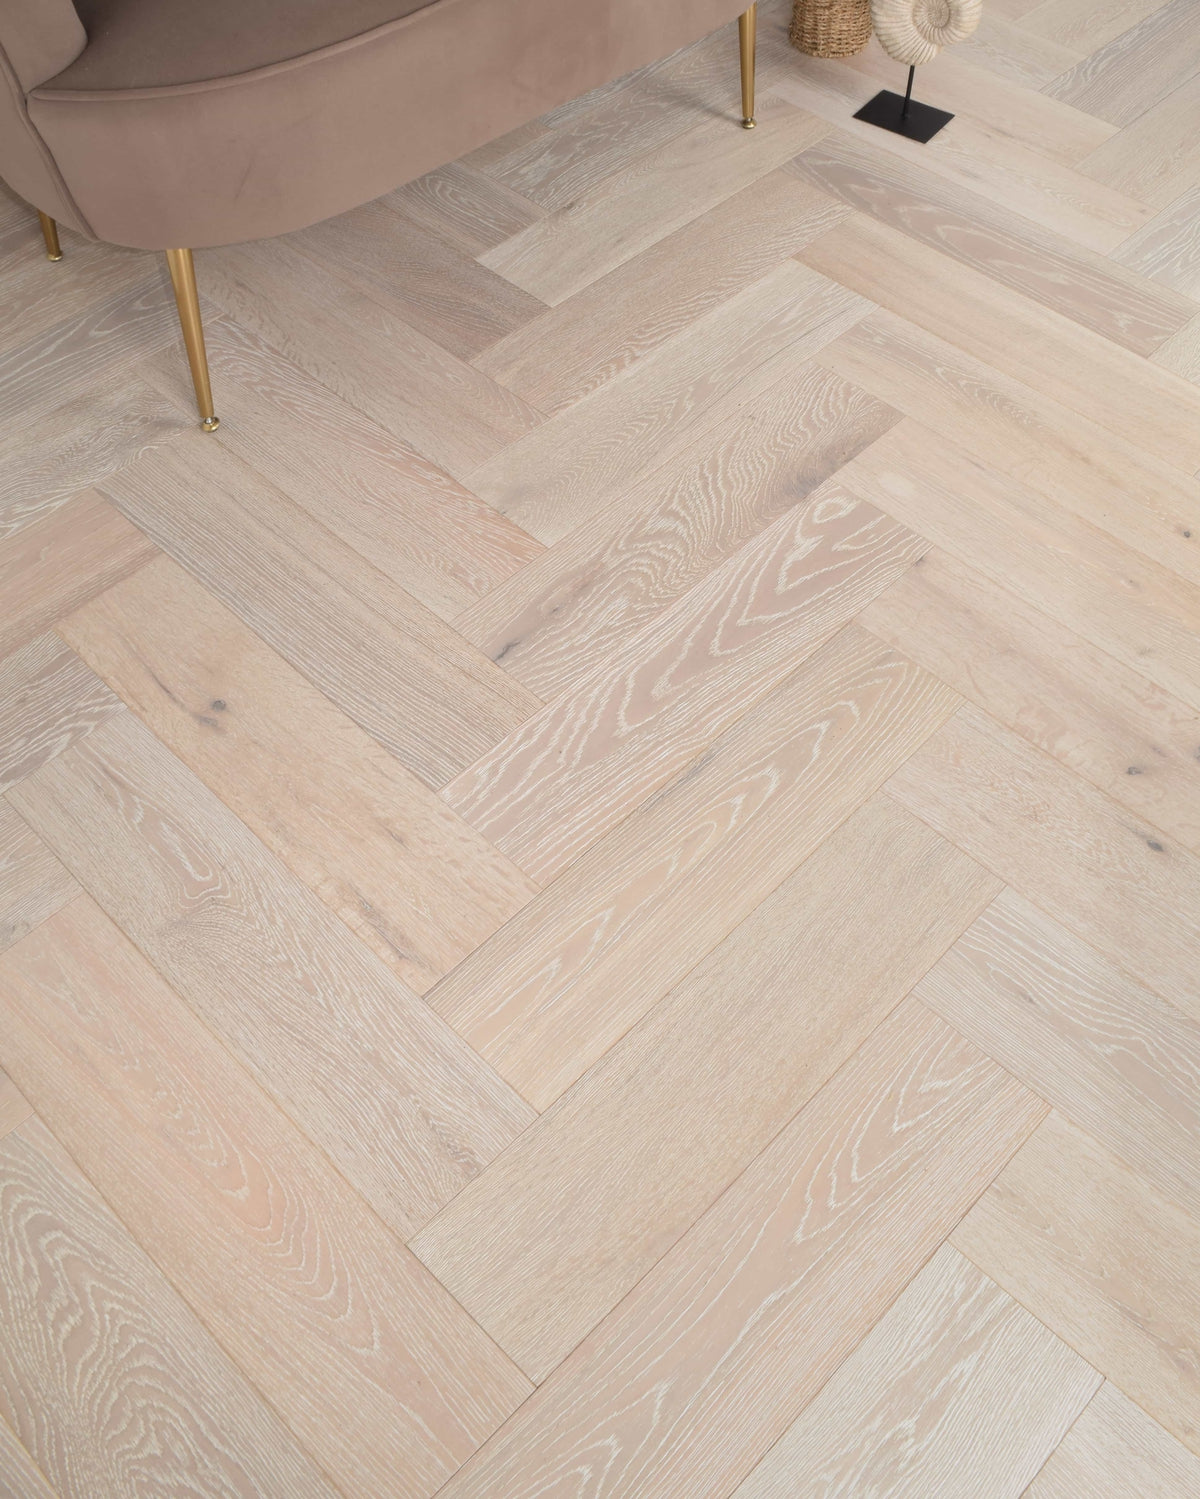 Underfoot Katmai Herringbone White Washed Matt Lacquered Sample